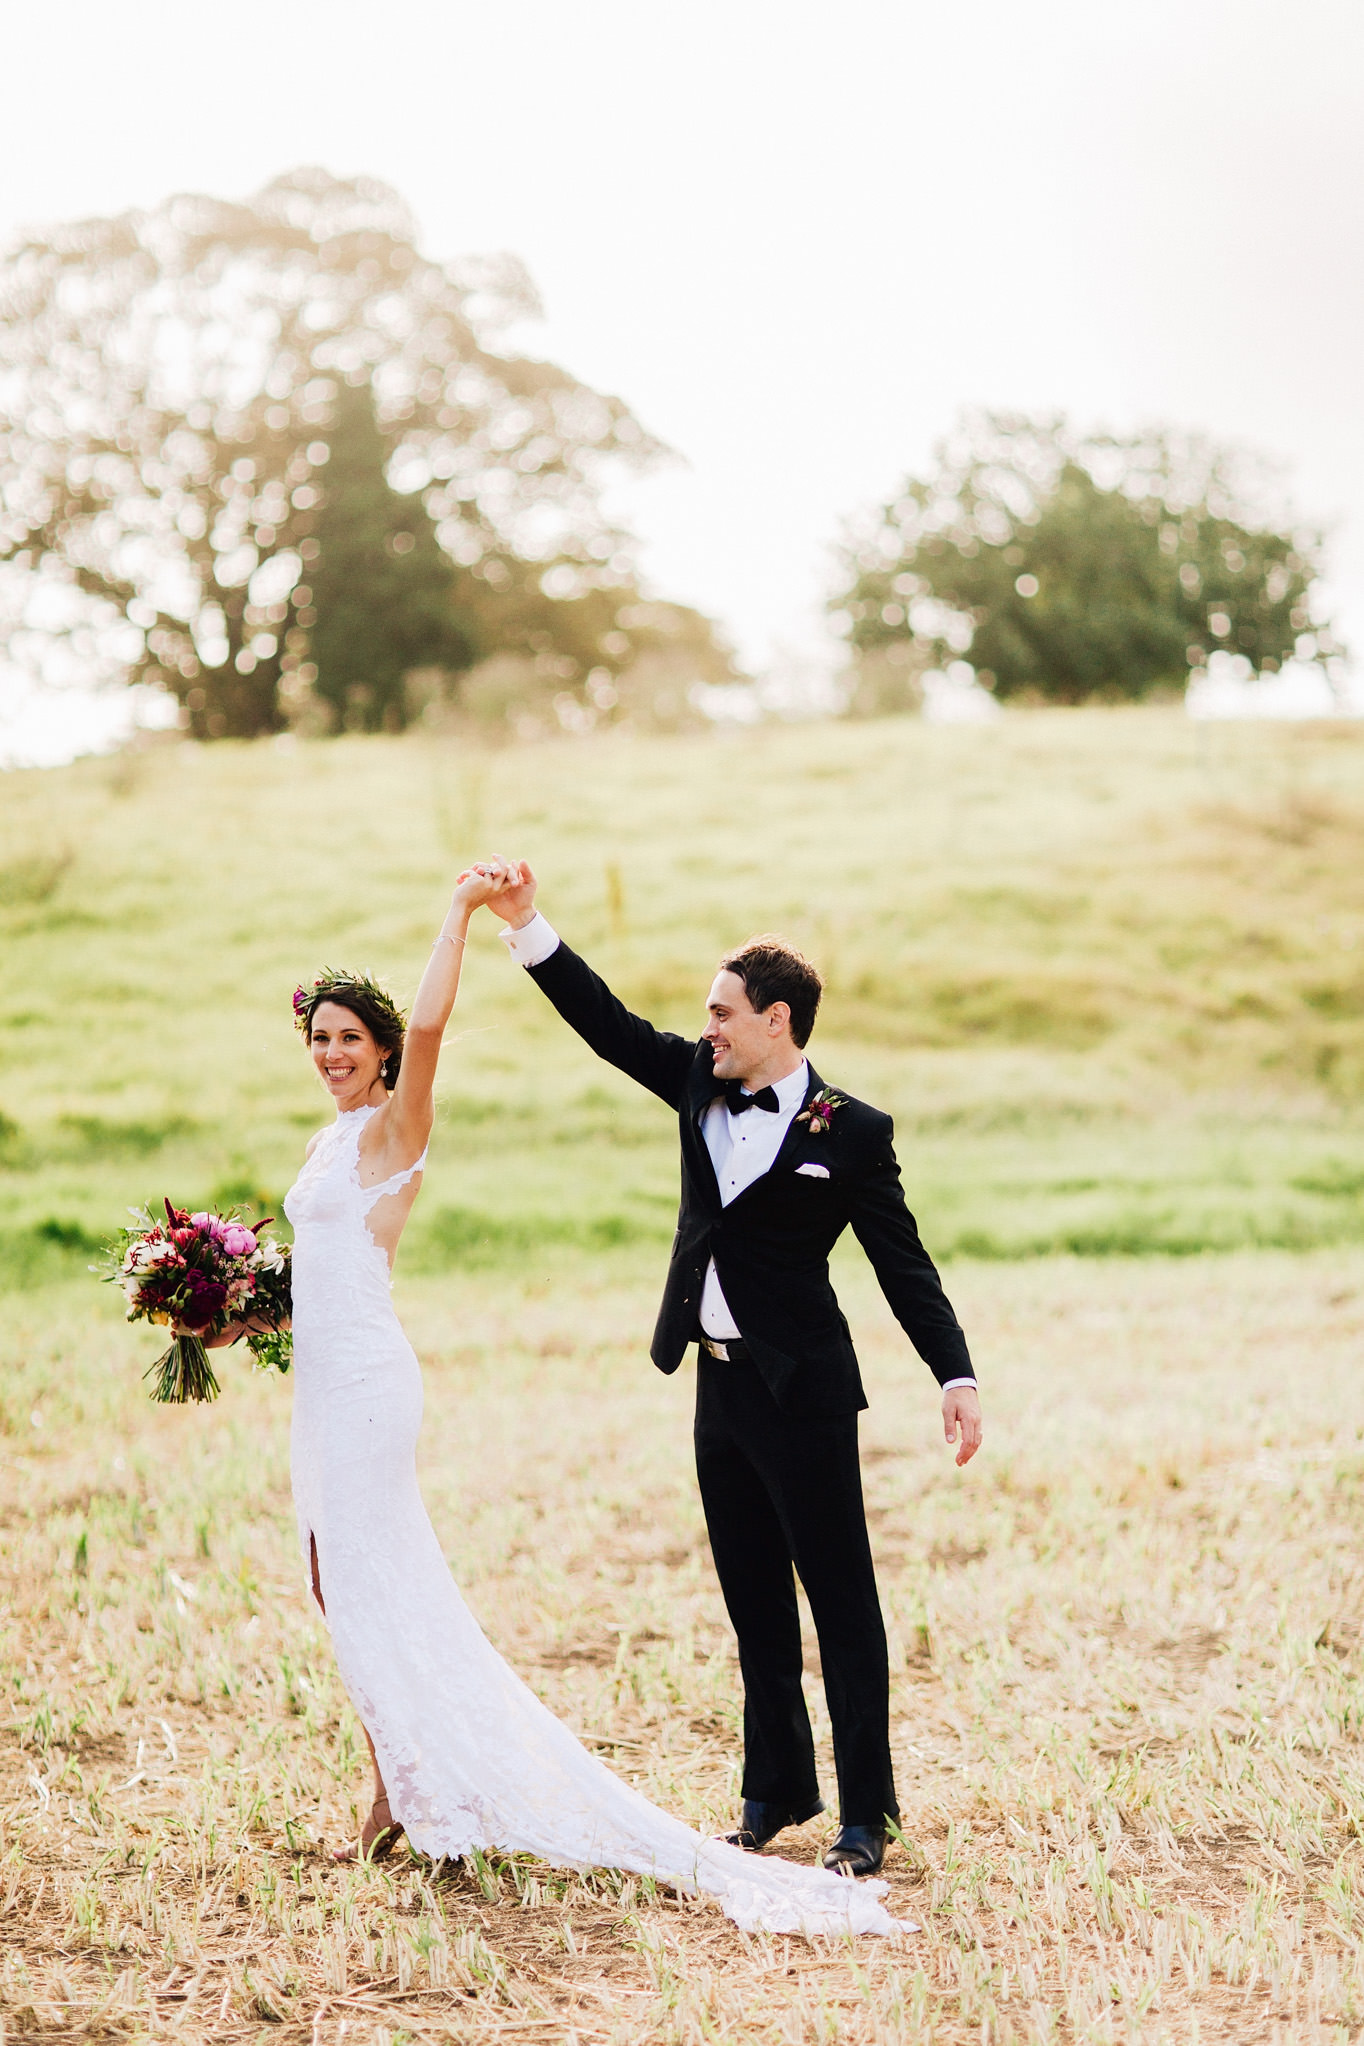 TocalHomestead_WeddingPhotography_LaurenAnnePhotography-1119.jpg